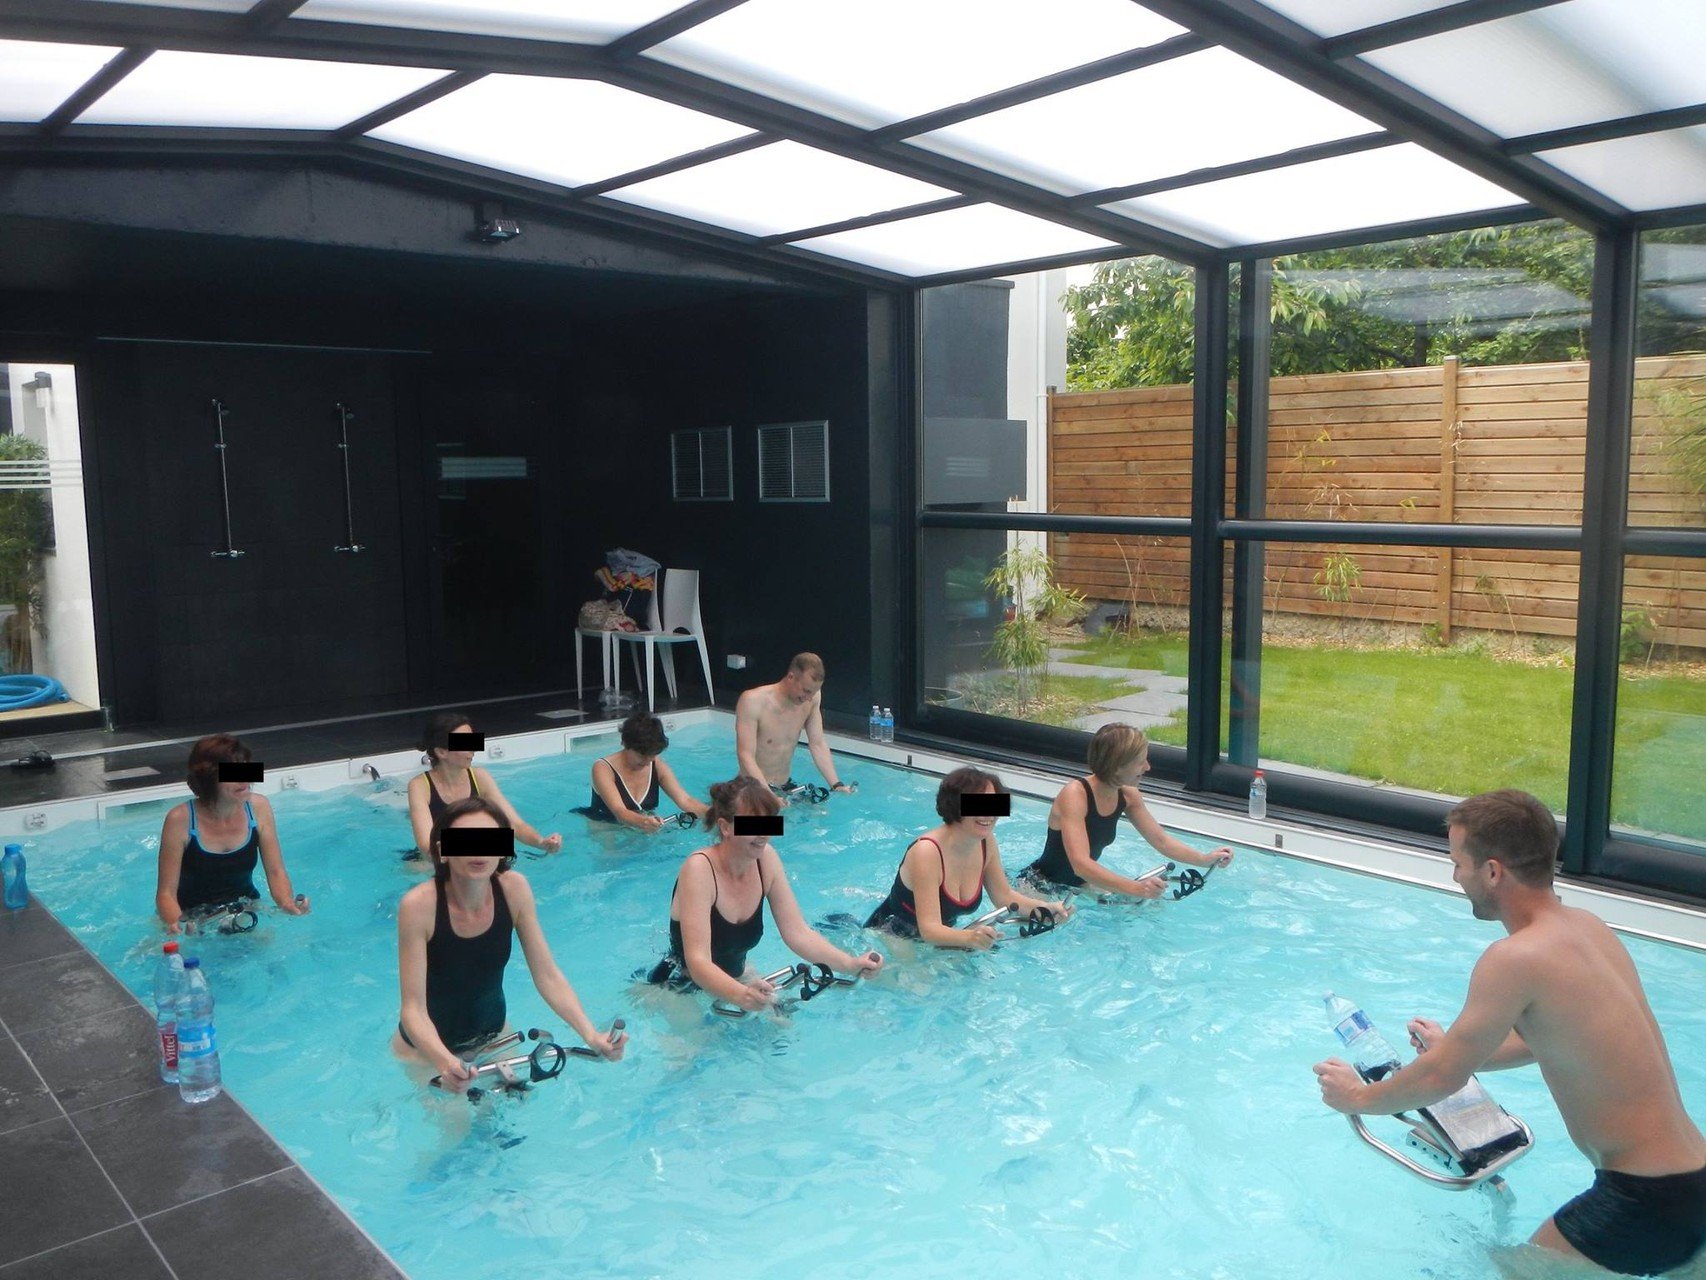 Cours aquabike rennes ker aqua piscine priv e for Piscine privee rennes